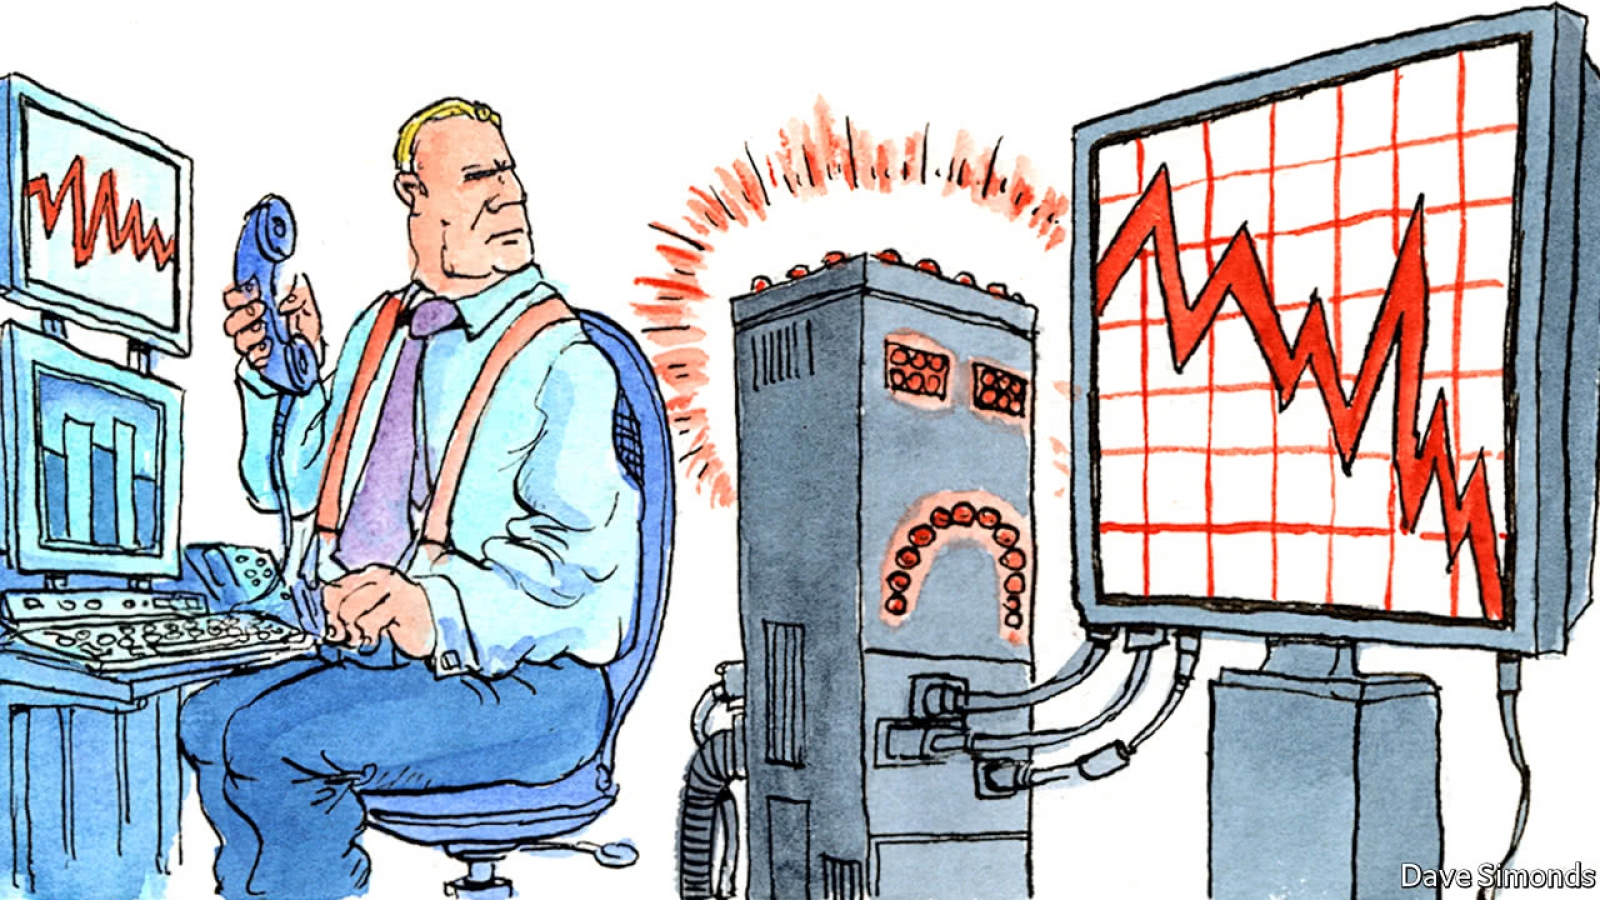 Viewpoint: Picking Stocks Better By Using Machine Learning